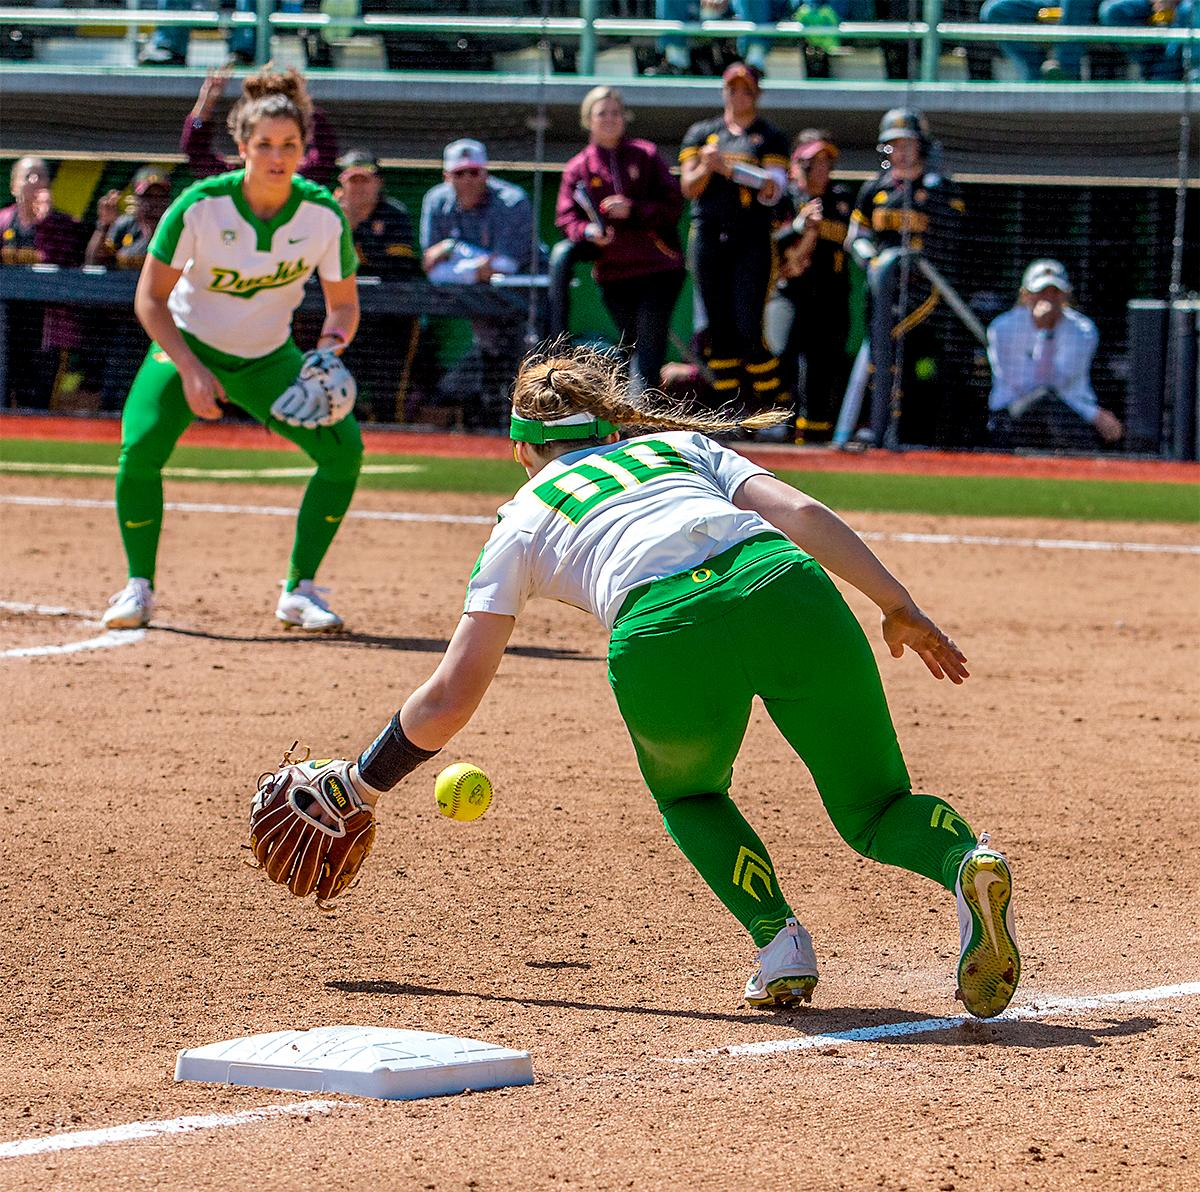 The Duck's Jenna Lilley (#00) goes for the catch before throwing to first base. The Oregon Ducks Softball team took their third win over the Arizona Sun Devils, 1-0, in the final game of the weekends series that saw the game go into an eighth inning before the Duck?s Mia Camuso (#7) scored a hit allowing teammate Haley Cruse (#26) to run into home plate for a point. The Ducks are now 33-0 this season and will next play a double header against Portland State on Tuesday, April 4 at Jane Sanders Stadium. Photo by August Frank, Oregon News Lab